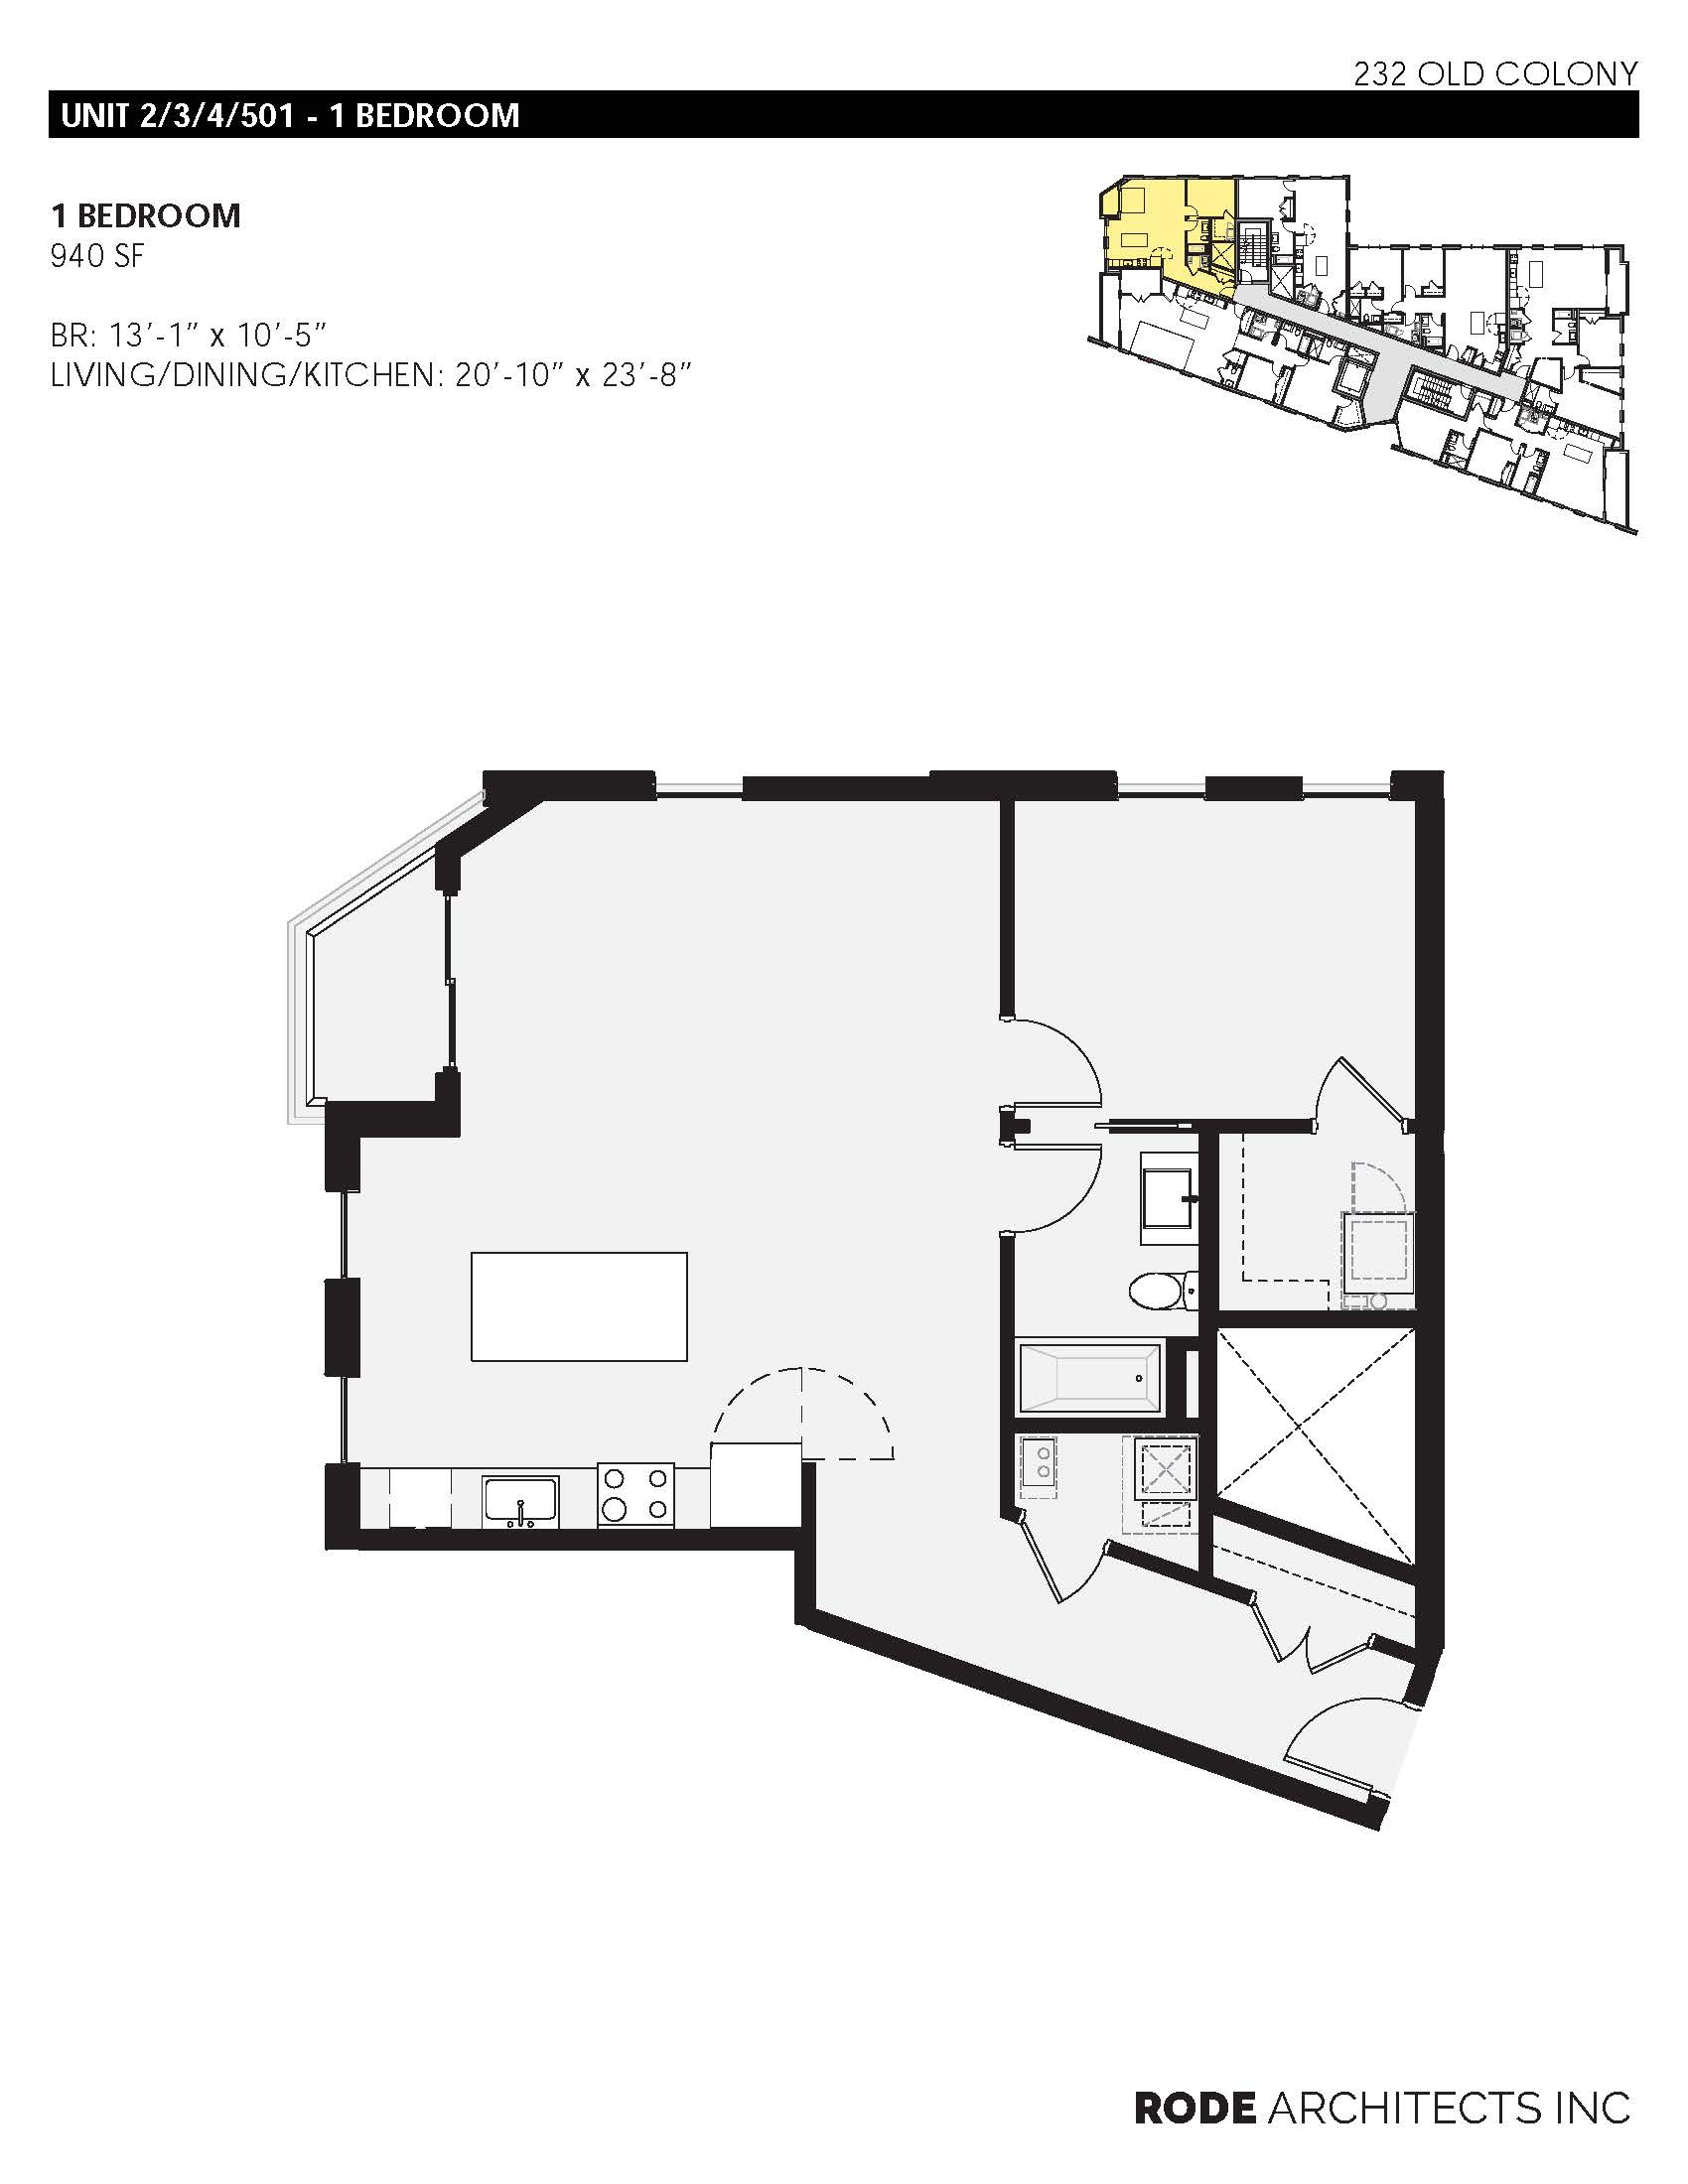 232 Old Colony - Marketing Plans (1)_Page_1.jpg